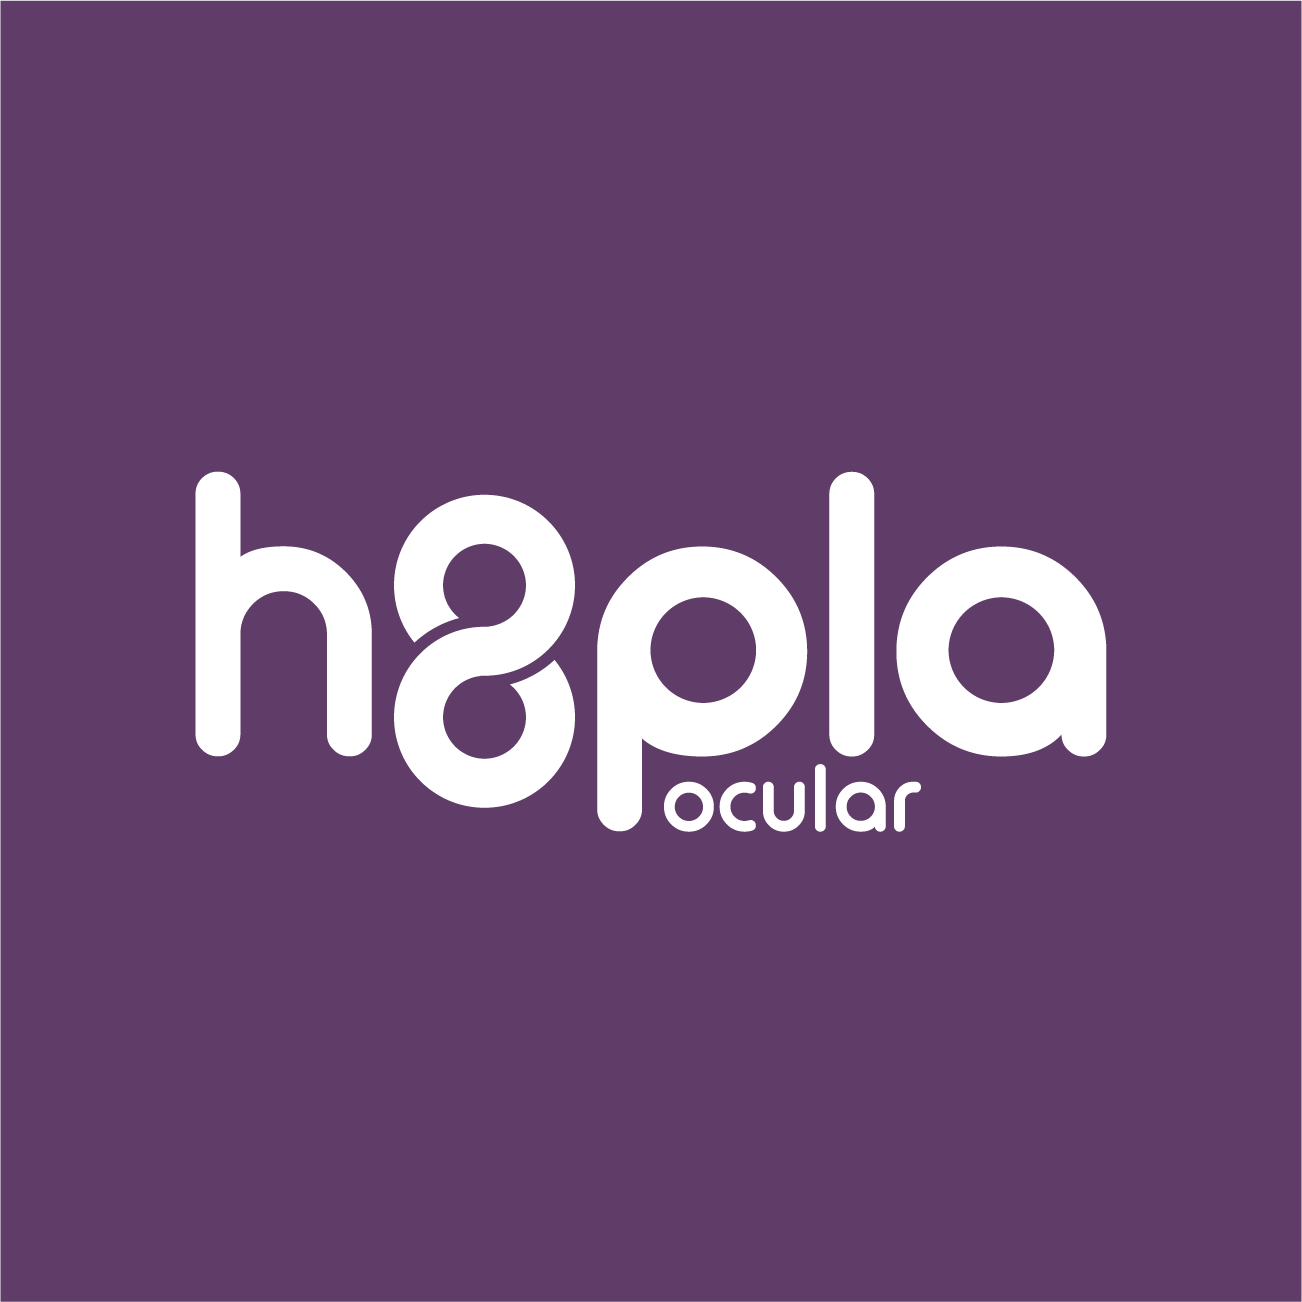 We are a Graphic Design, Film, Photography, Advertising, Digital Media & Marketing Agency based in Jamaica; Helping clients build their brands. #behoopla